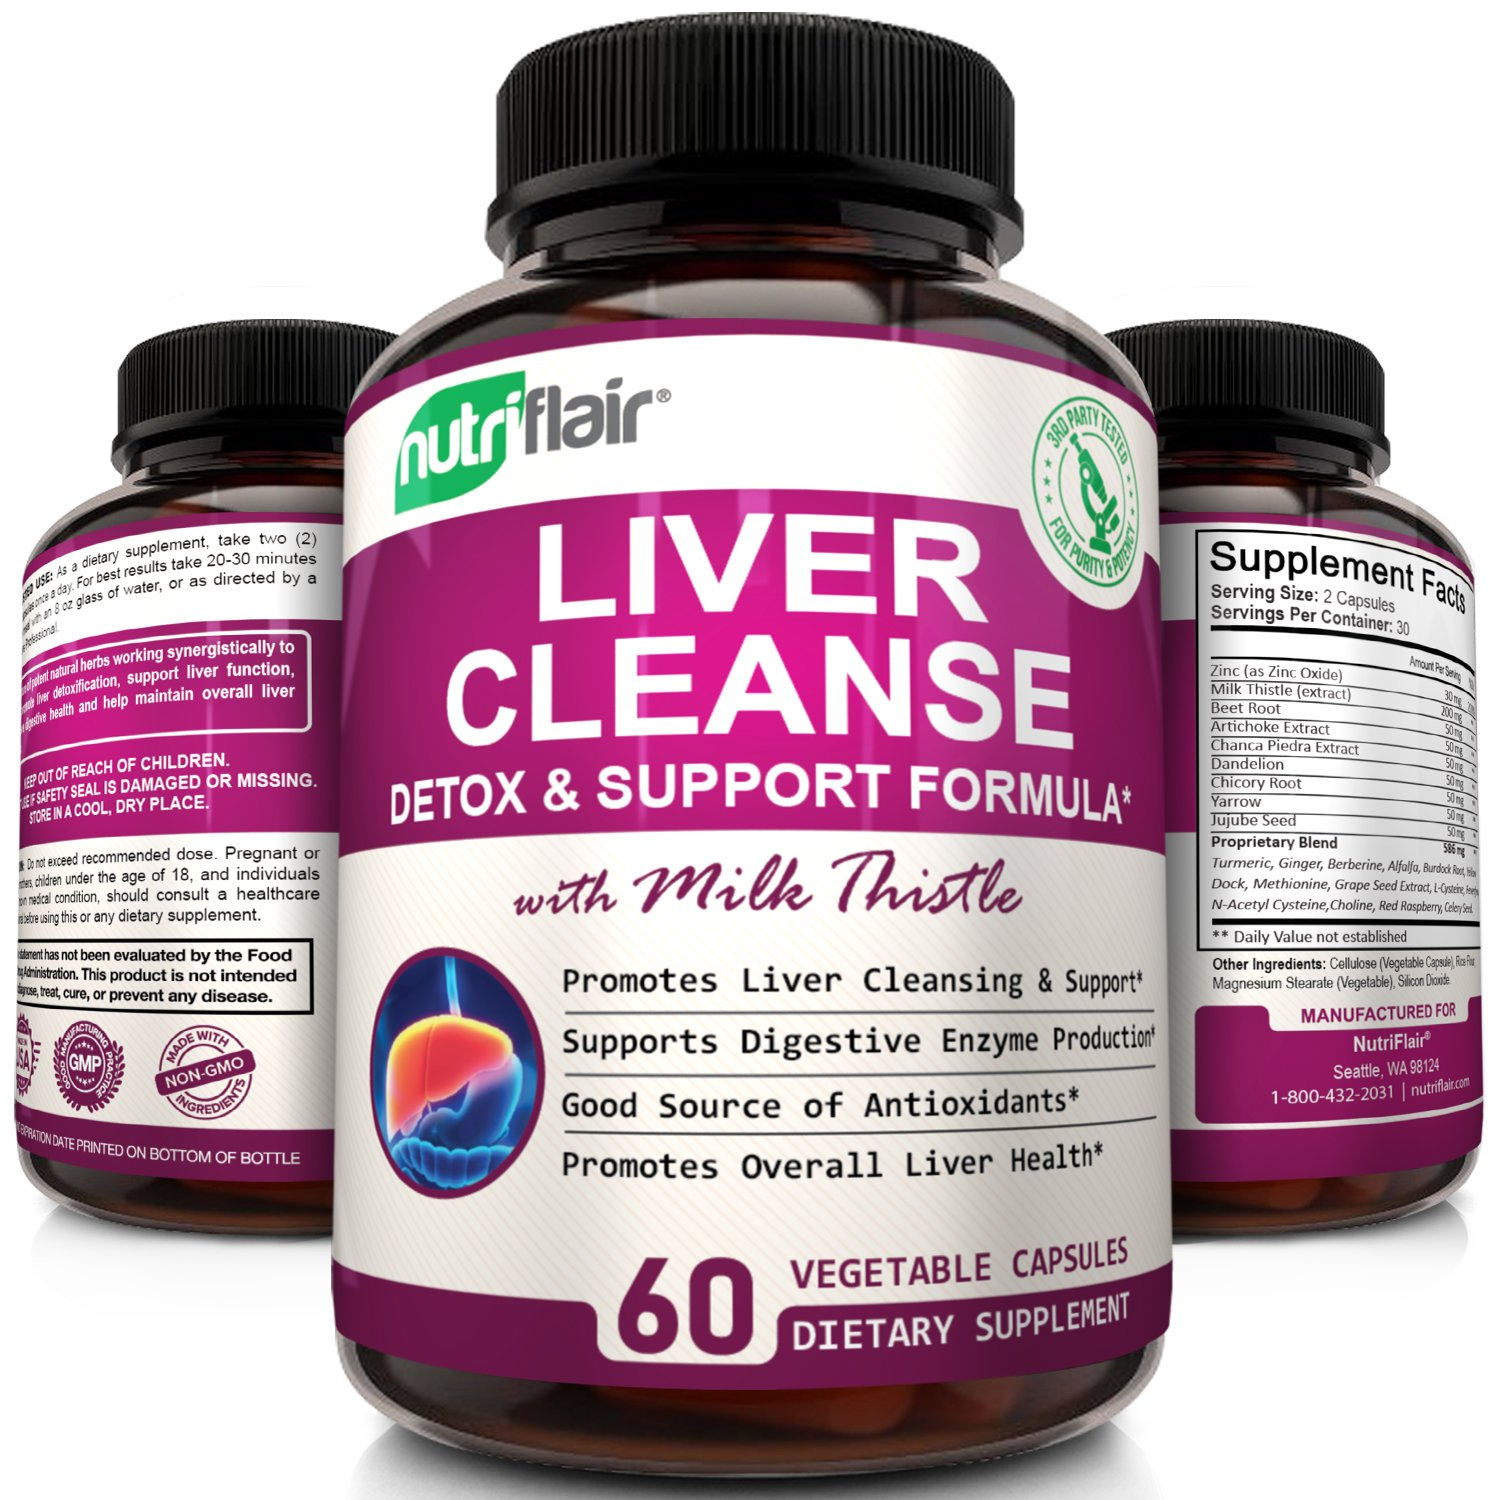 NutriFlair® Liver Cleanse, Detox & Support with Milk Thistle Detoxifier and Regenerator, 60 Veggie Capsules (packaging may vary)